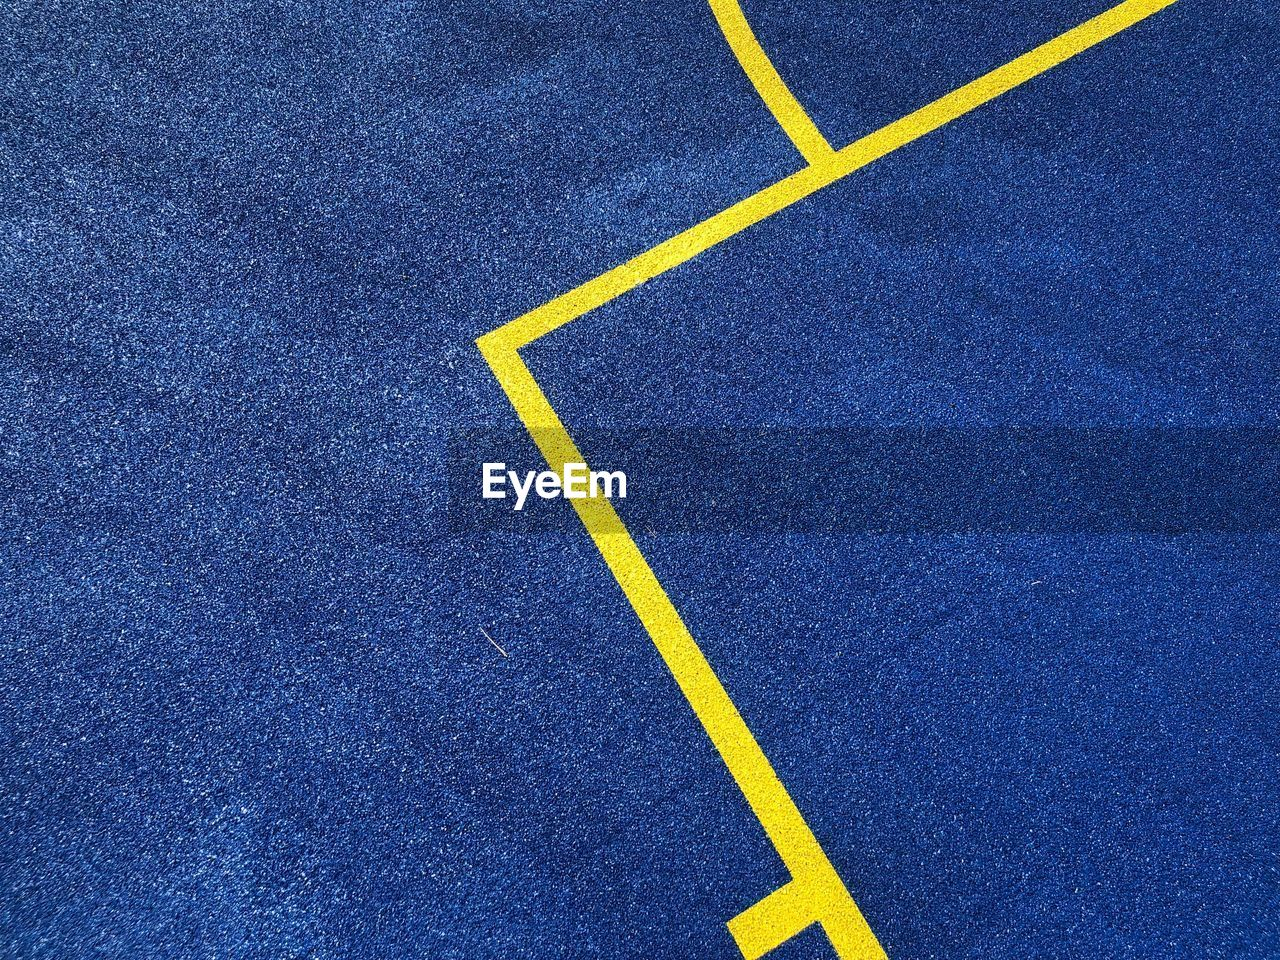 yellow, road, sign, blue, day, asphalt, symbol, no people, high angle view, transportation, road marking, marking, full frame, textured, single line, dividing line, backgrounds, pattern, outdoors, direction